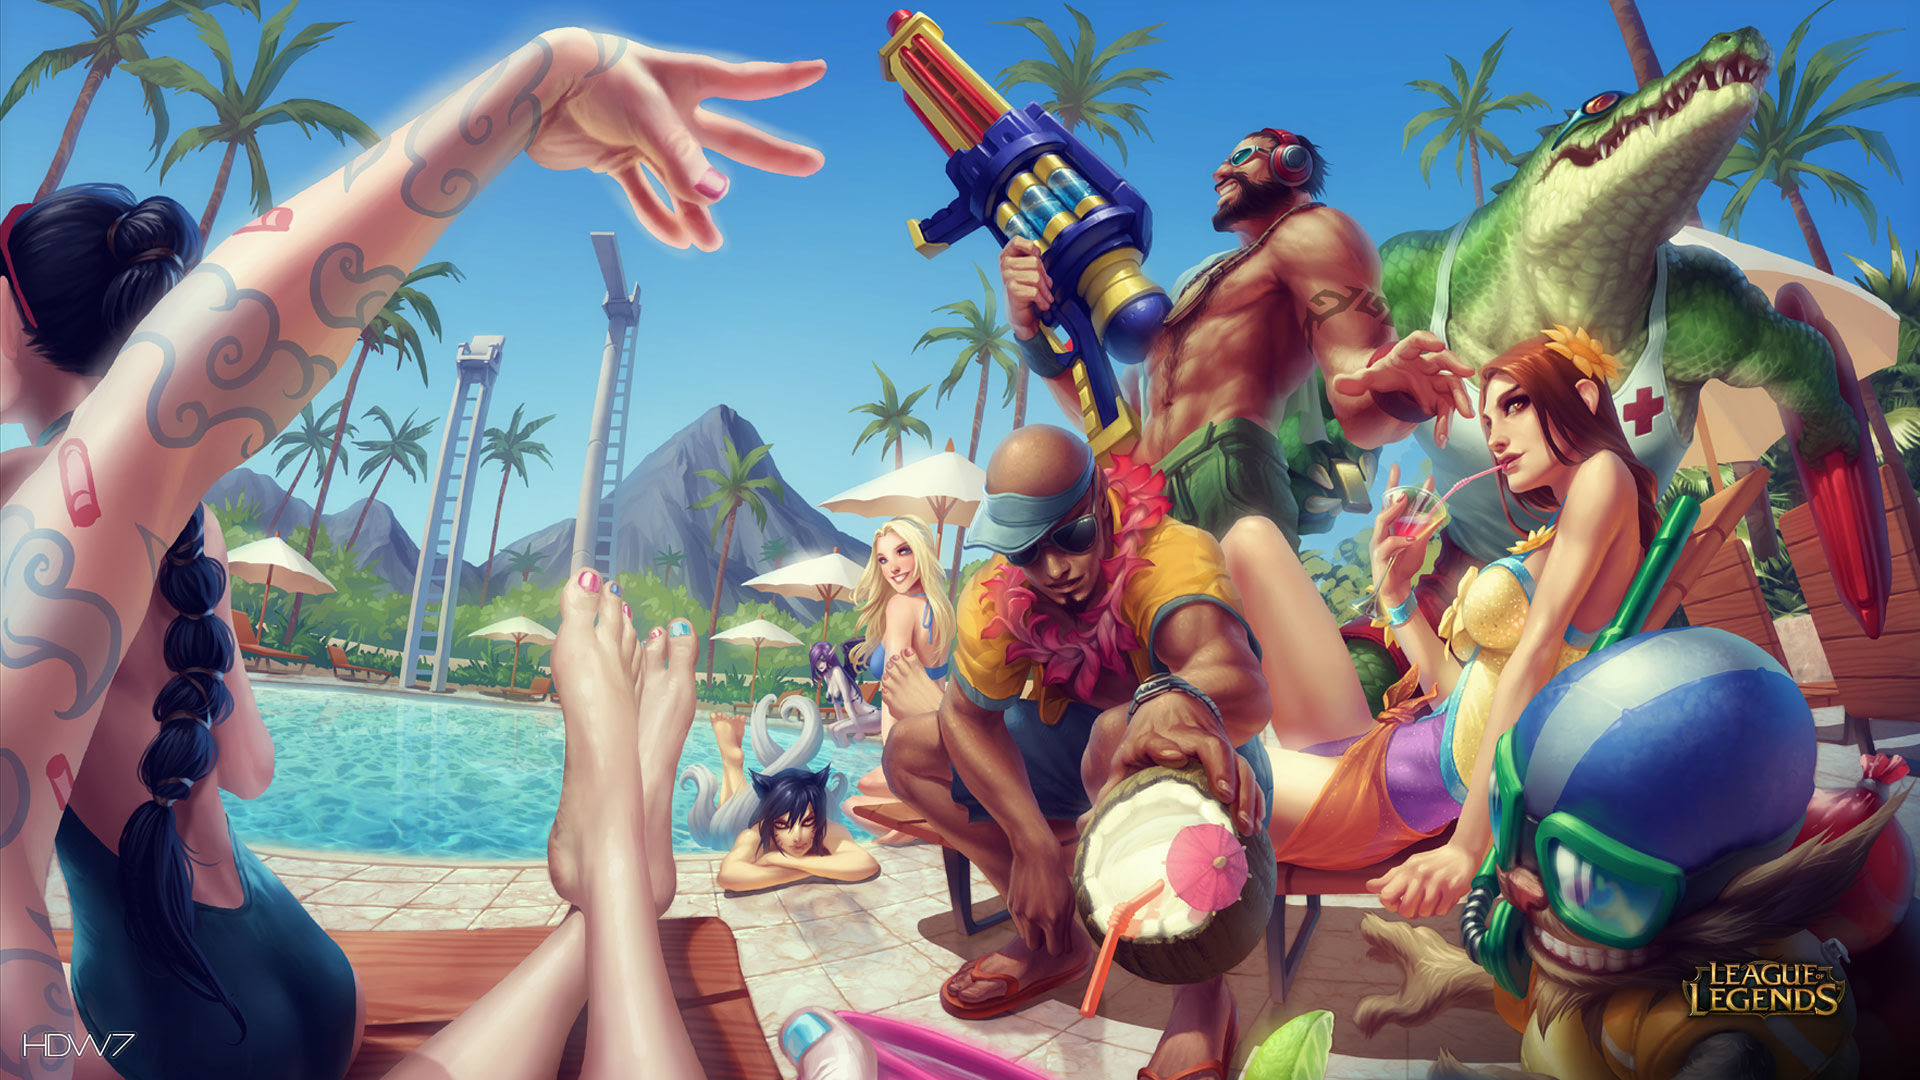 League Of Legends Game Lol Pool Party Fun Hd Wallpaper Gallery 220